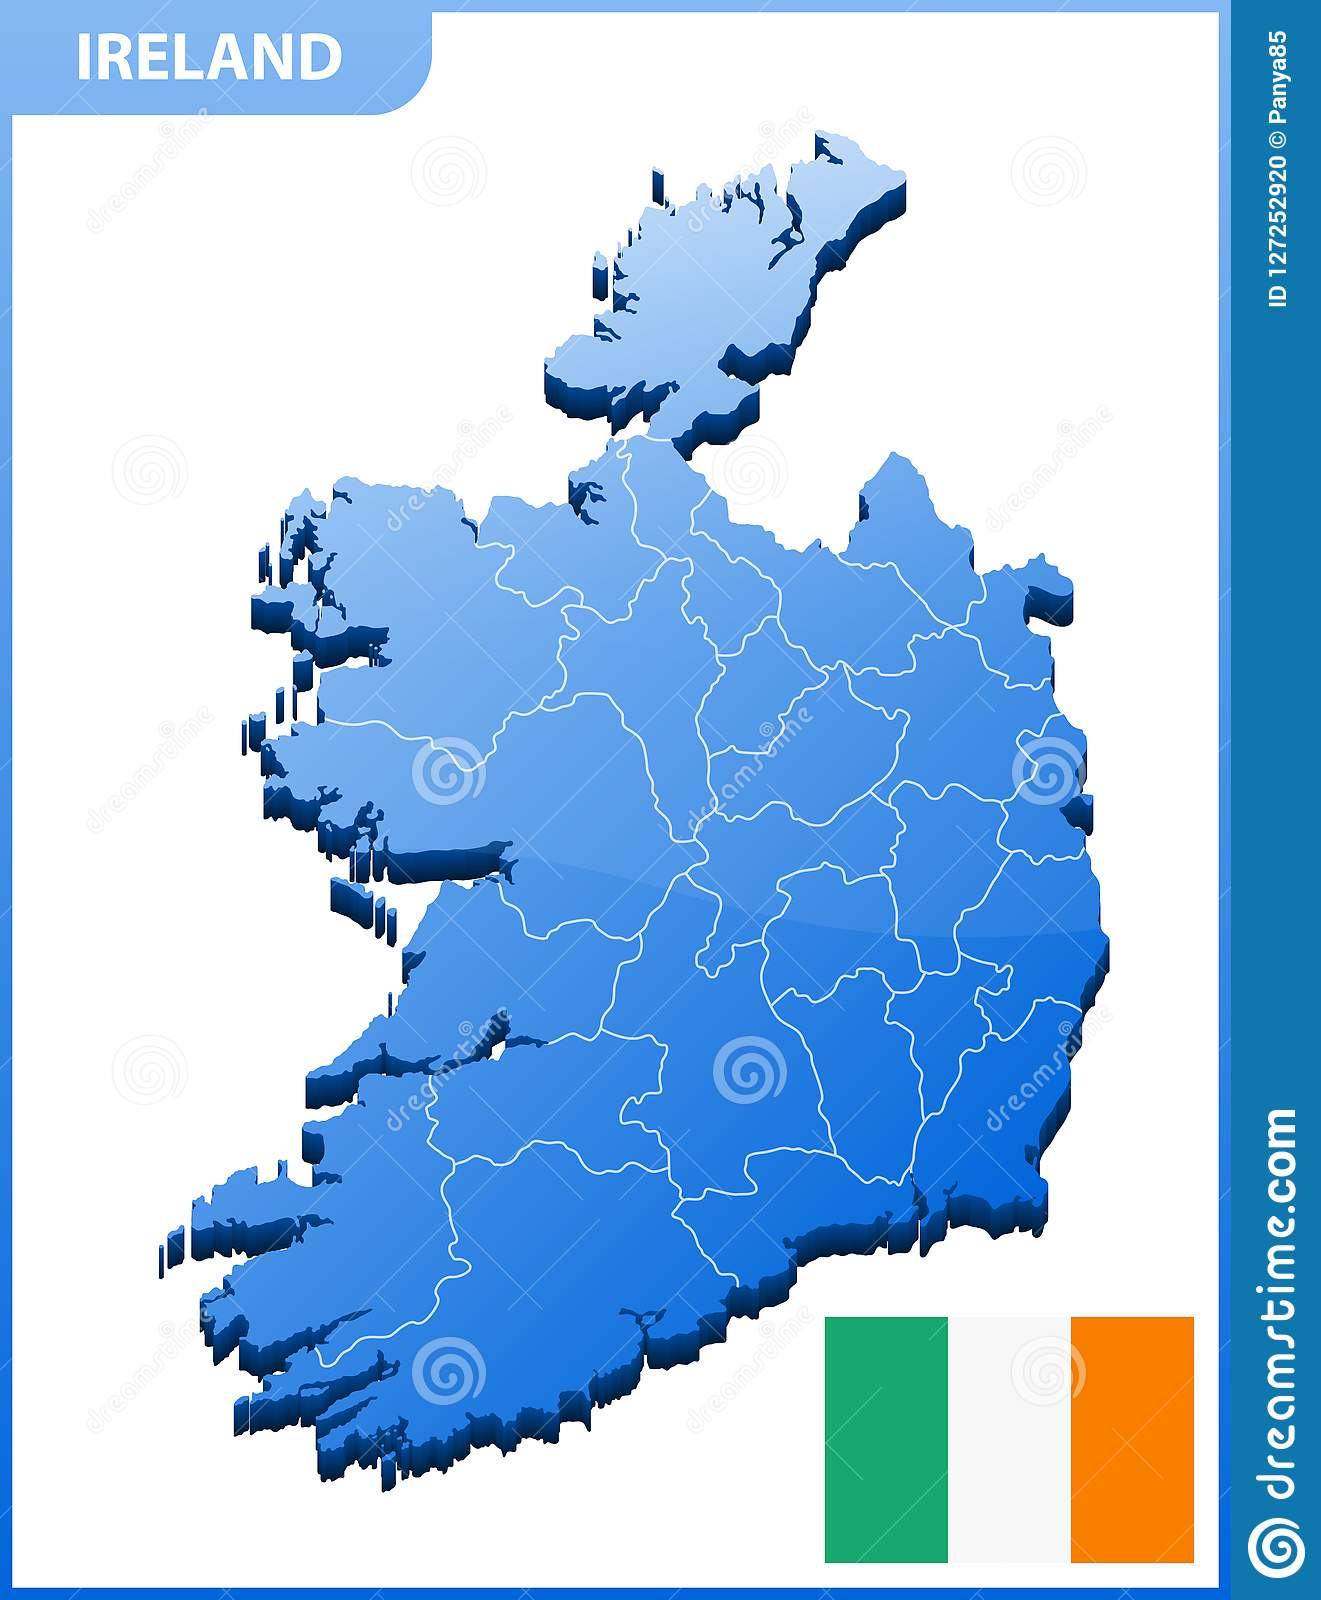 Detailed Map Of Ireland.Highly Detailed Three Dimensional Map Of Ireland With Regions Border